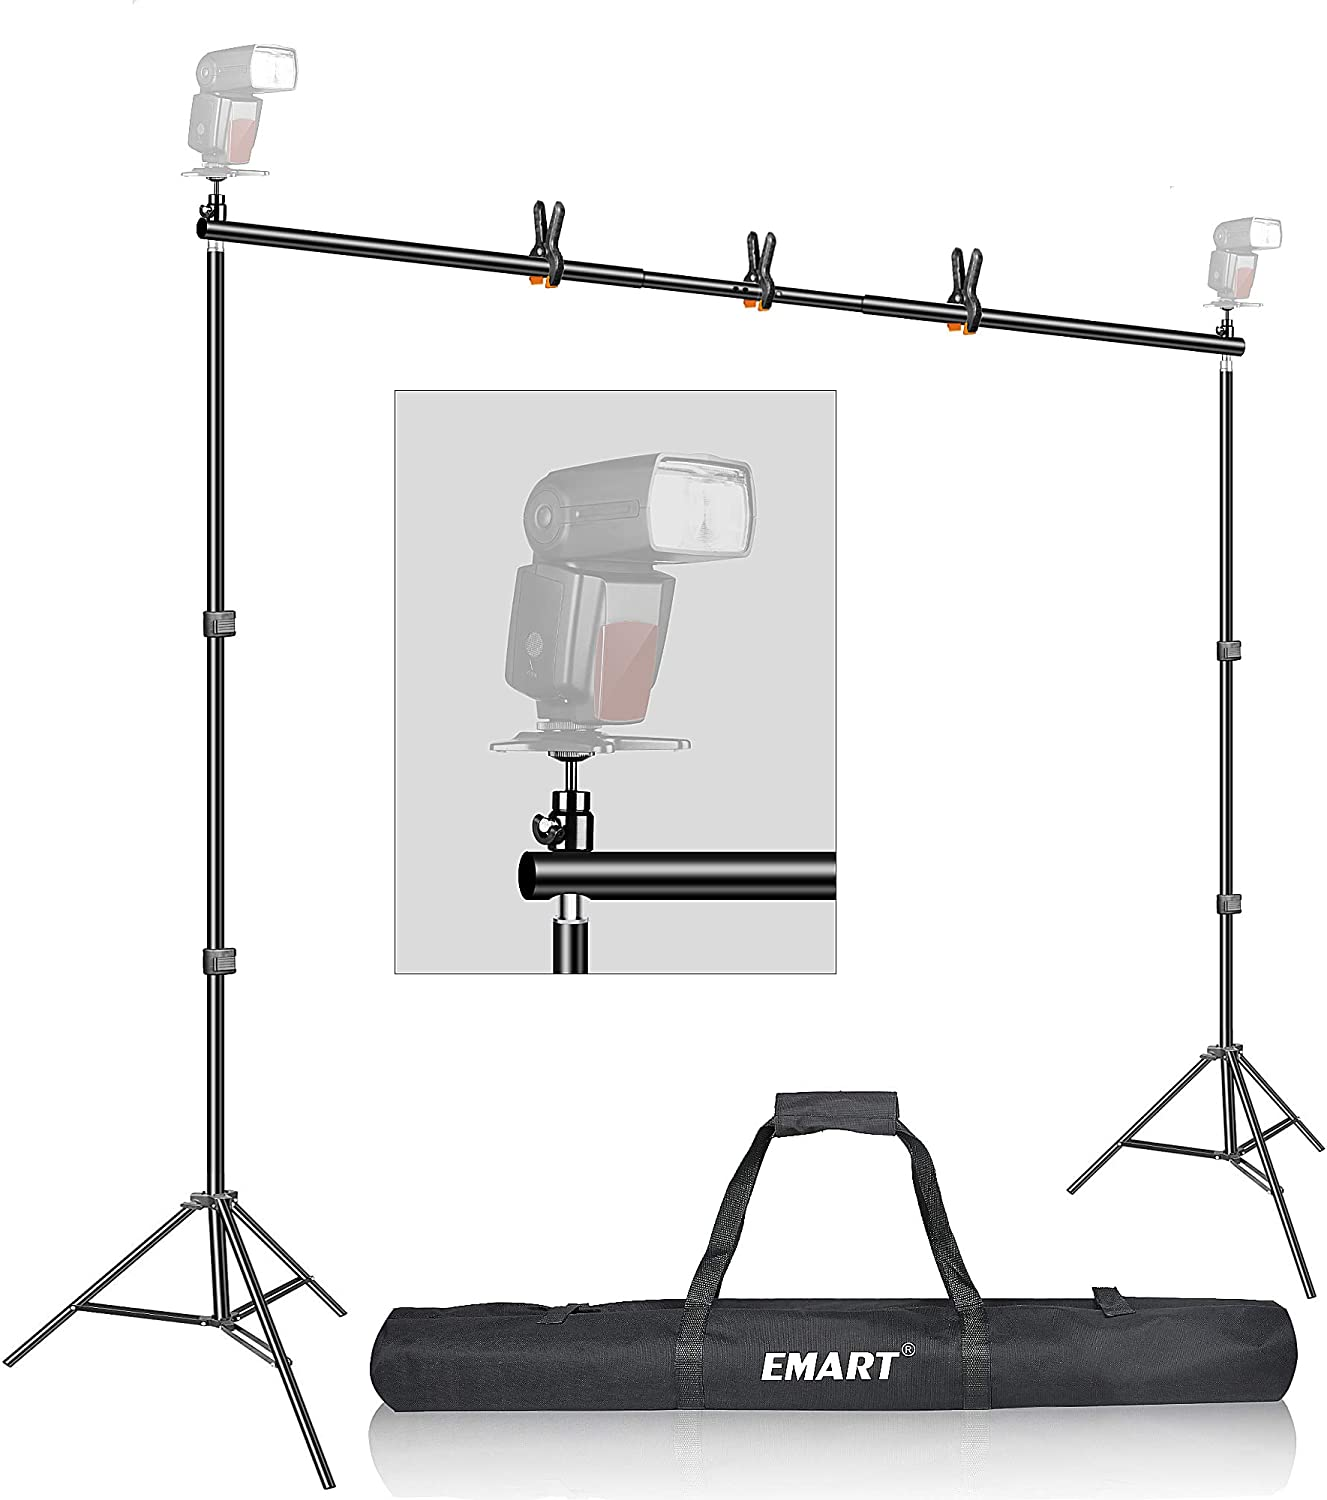 Backdrop Stand, Emart 7x10ft Photo Video Studio Muslin Background Stand Backdrop Support System Kit with Mini Ball Head, Photography Studio